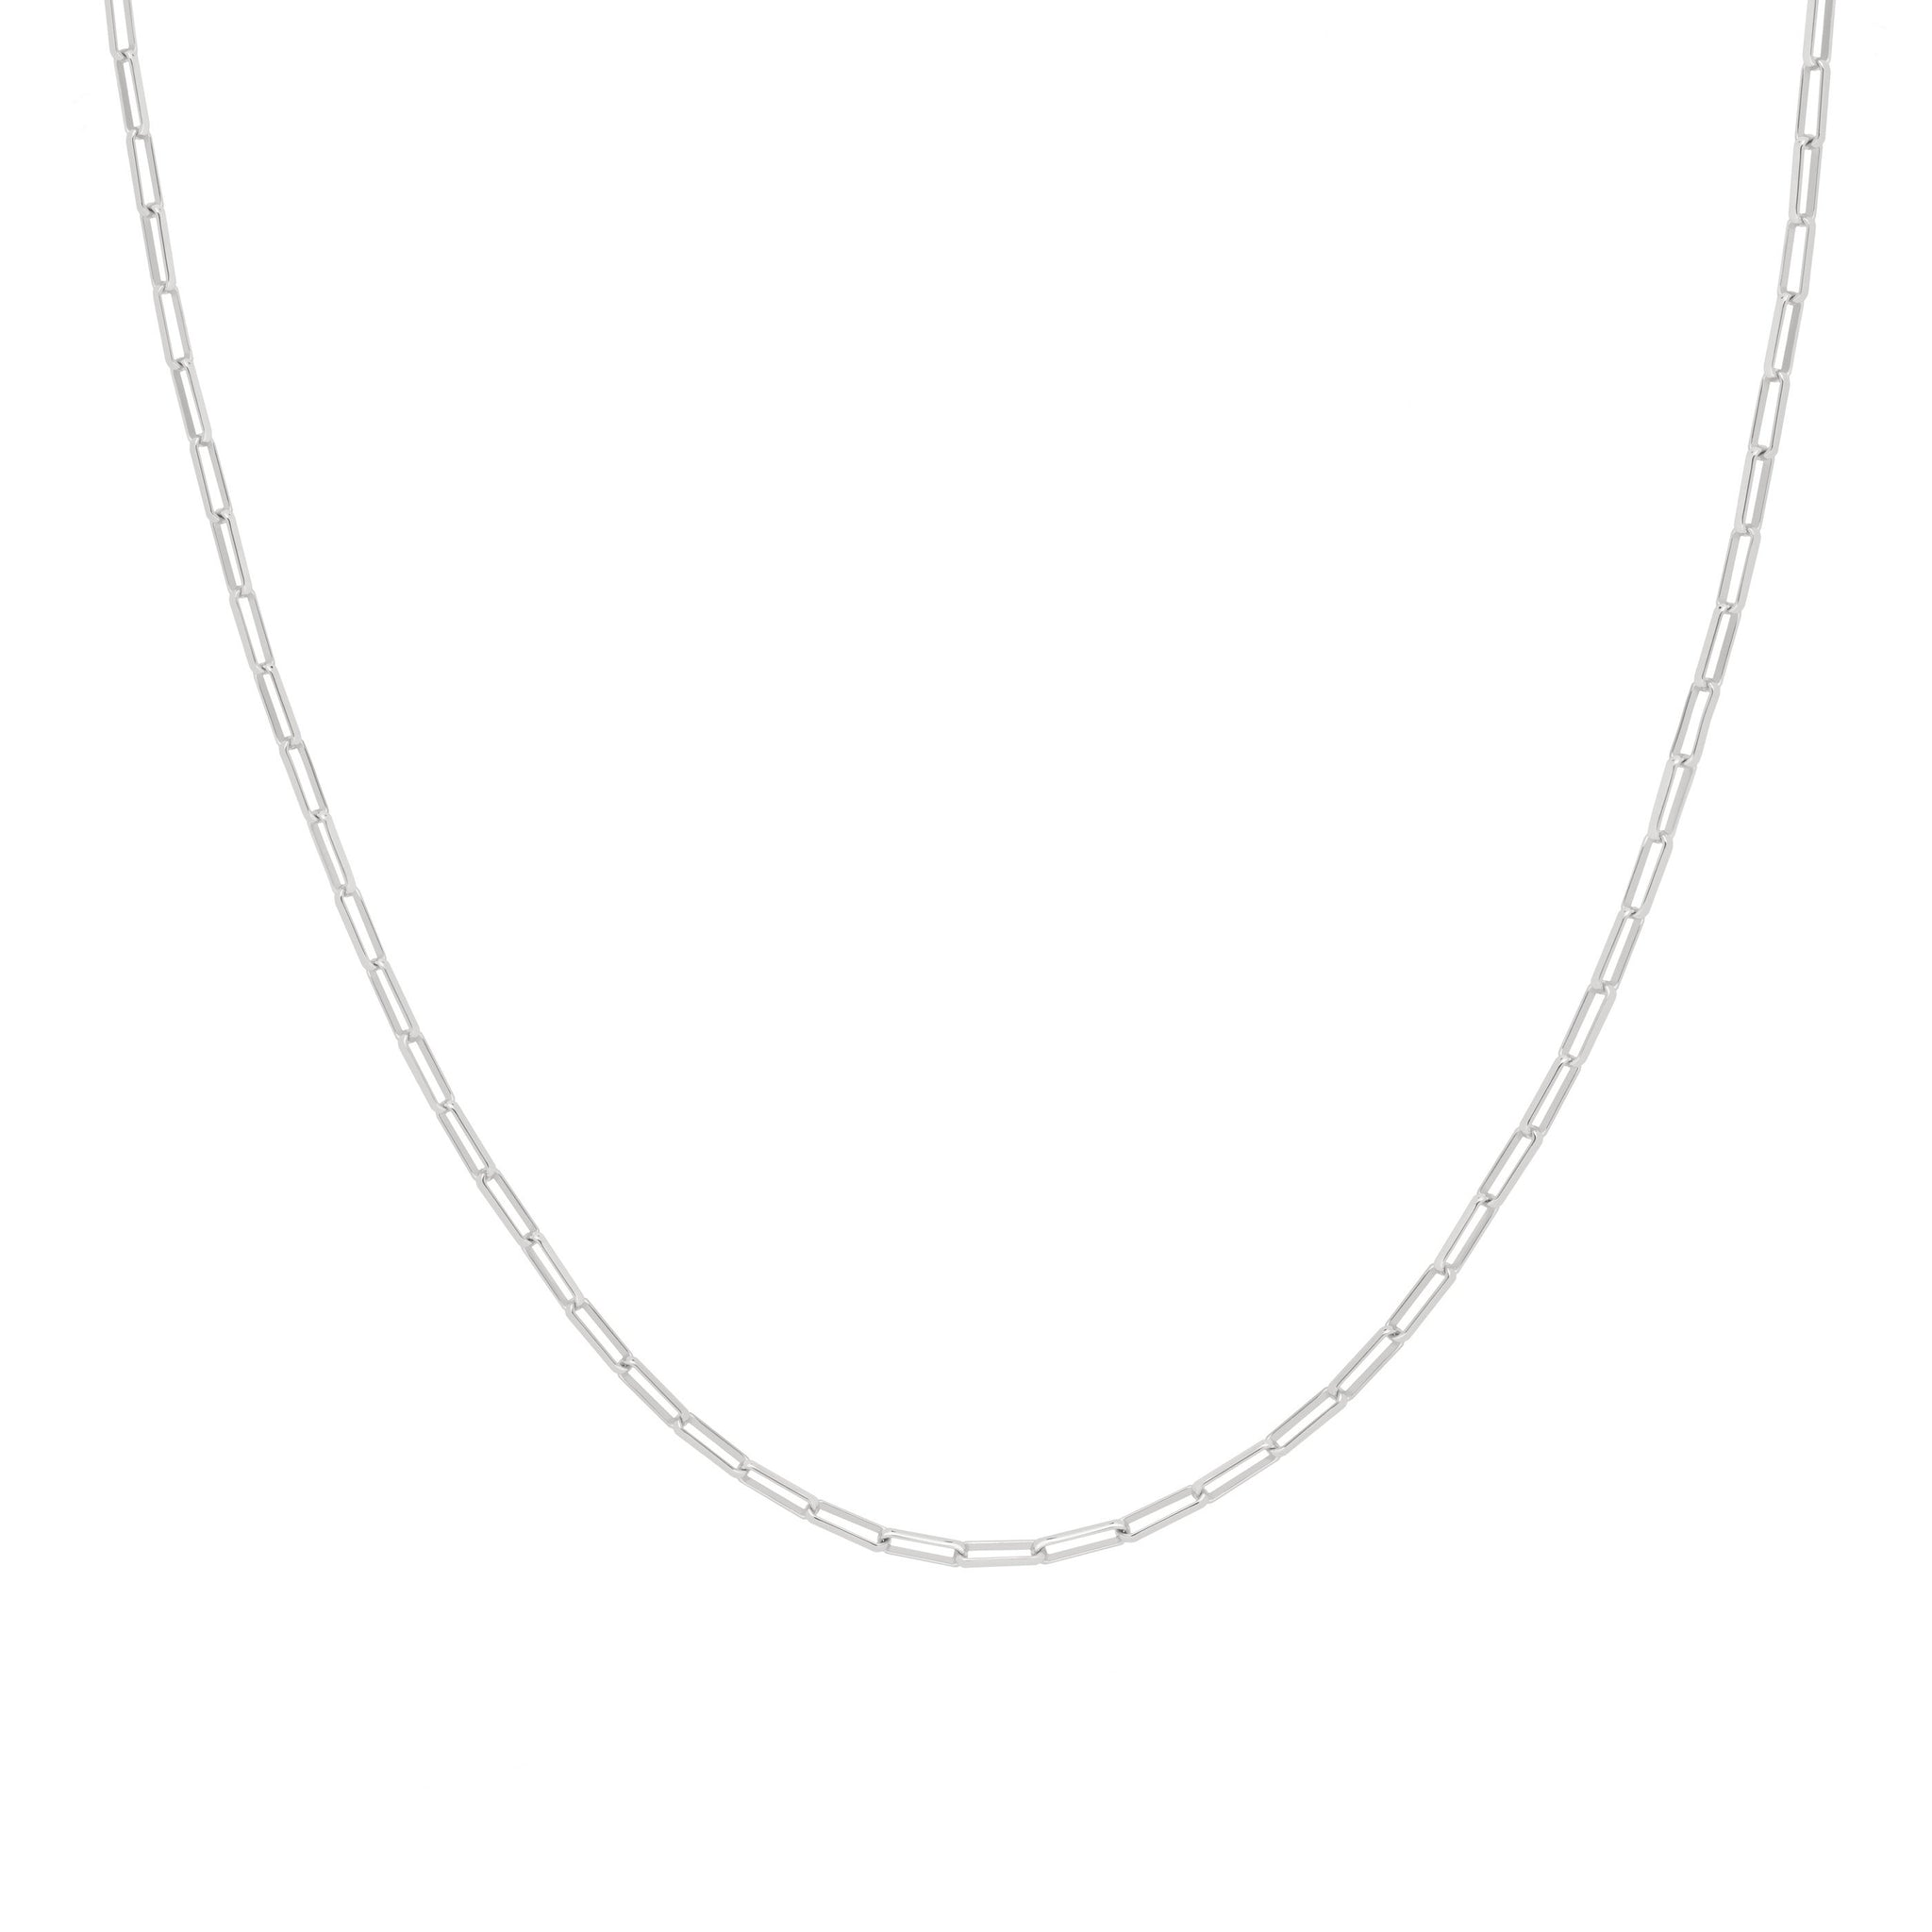 Long Link Chain Necklace in Silver